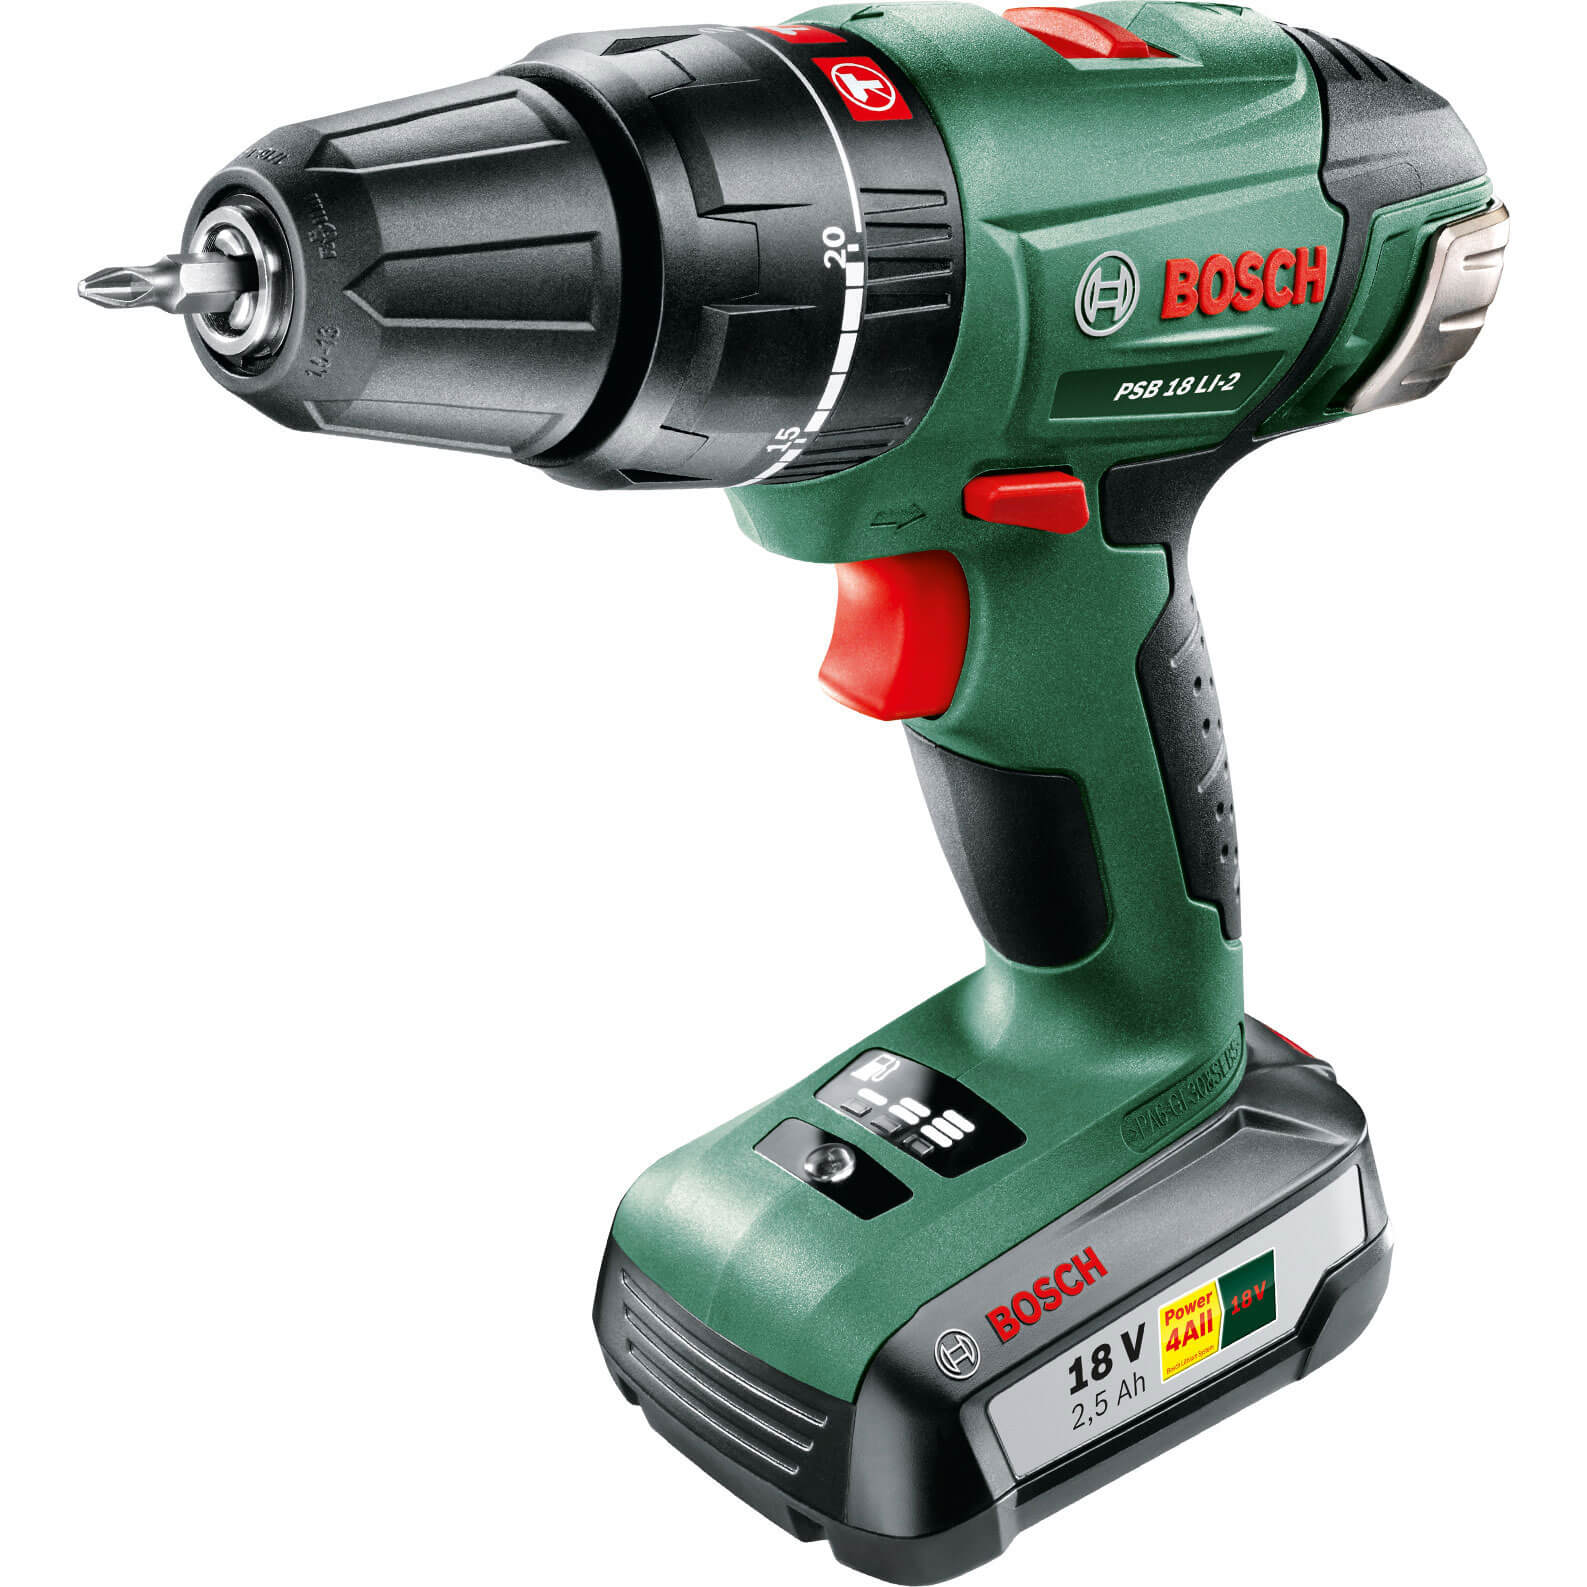 bosch psb 18 li 2 18v cordless combi drill. Black Bedroom Furniture Sets. Home Design Ideas